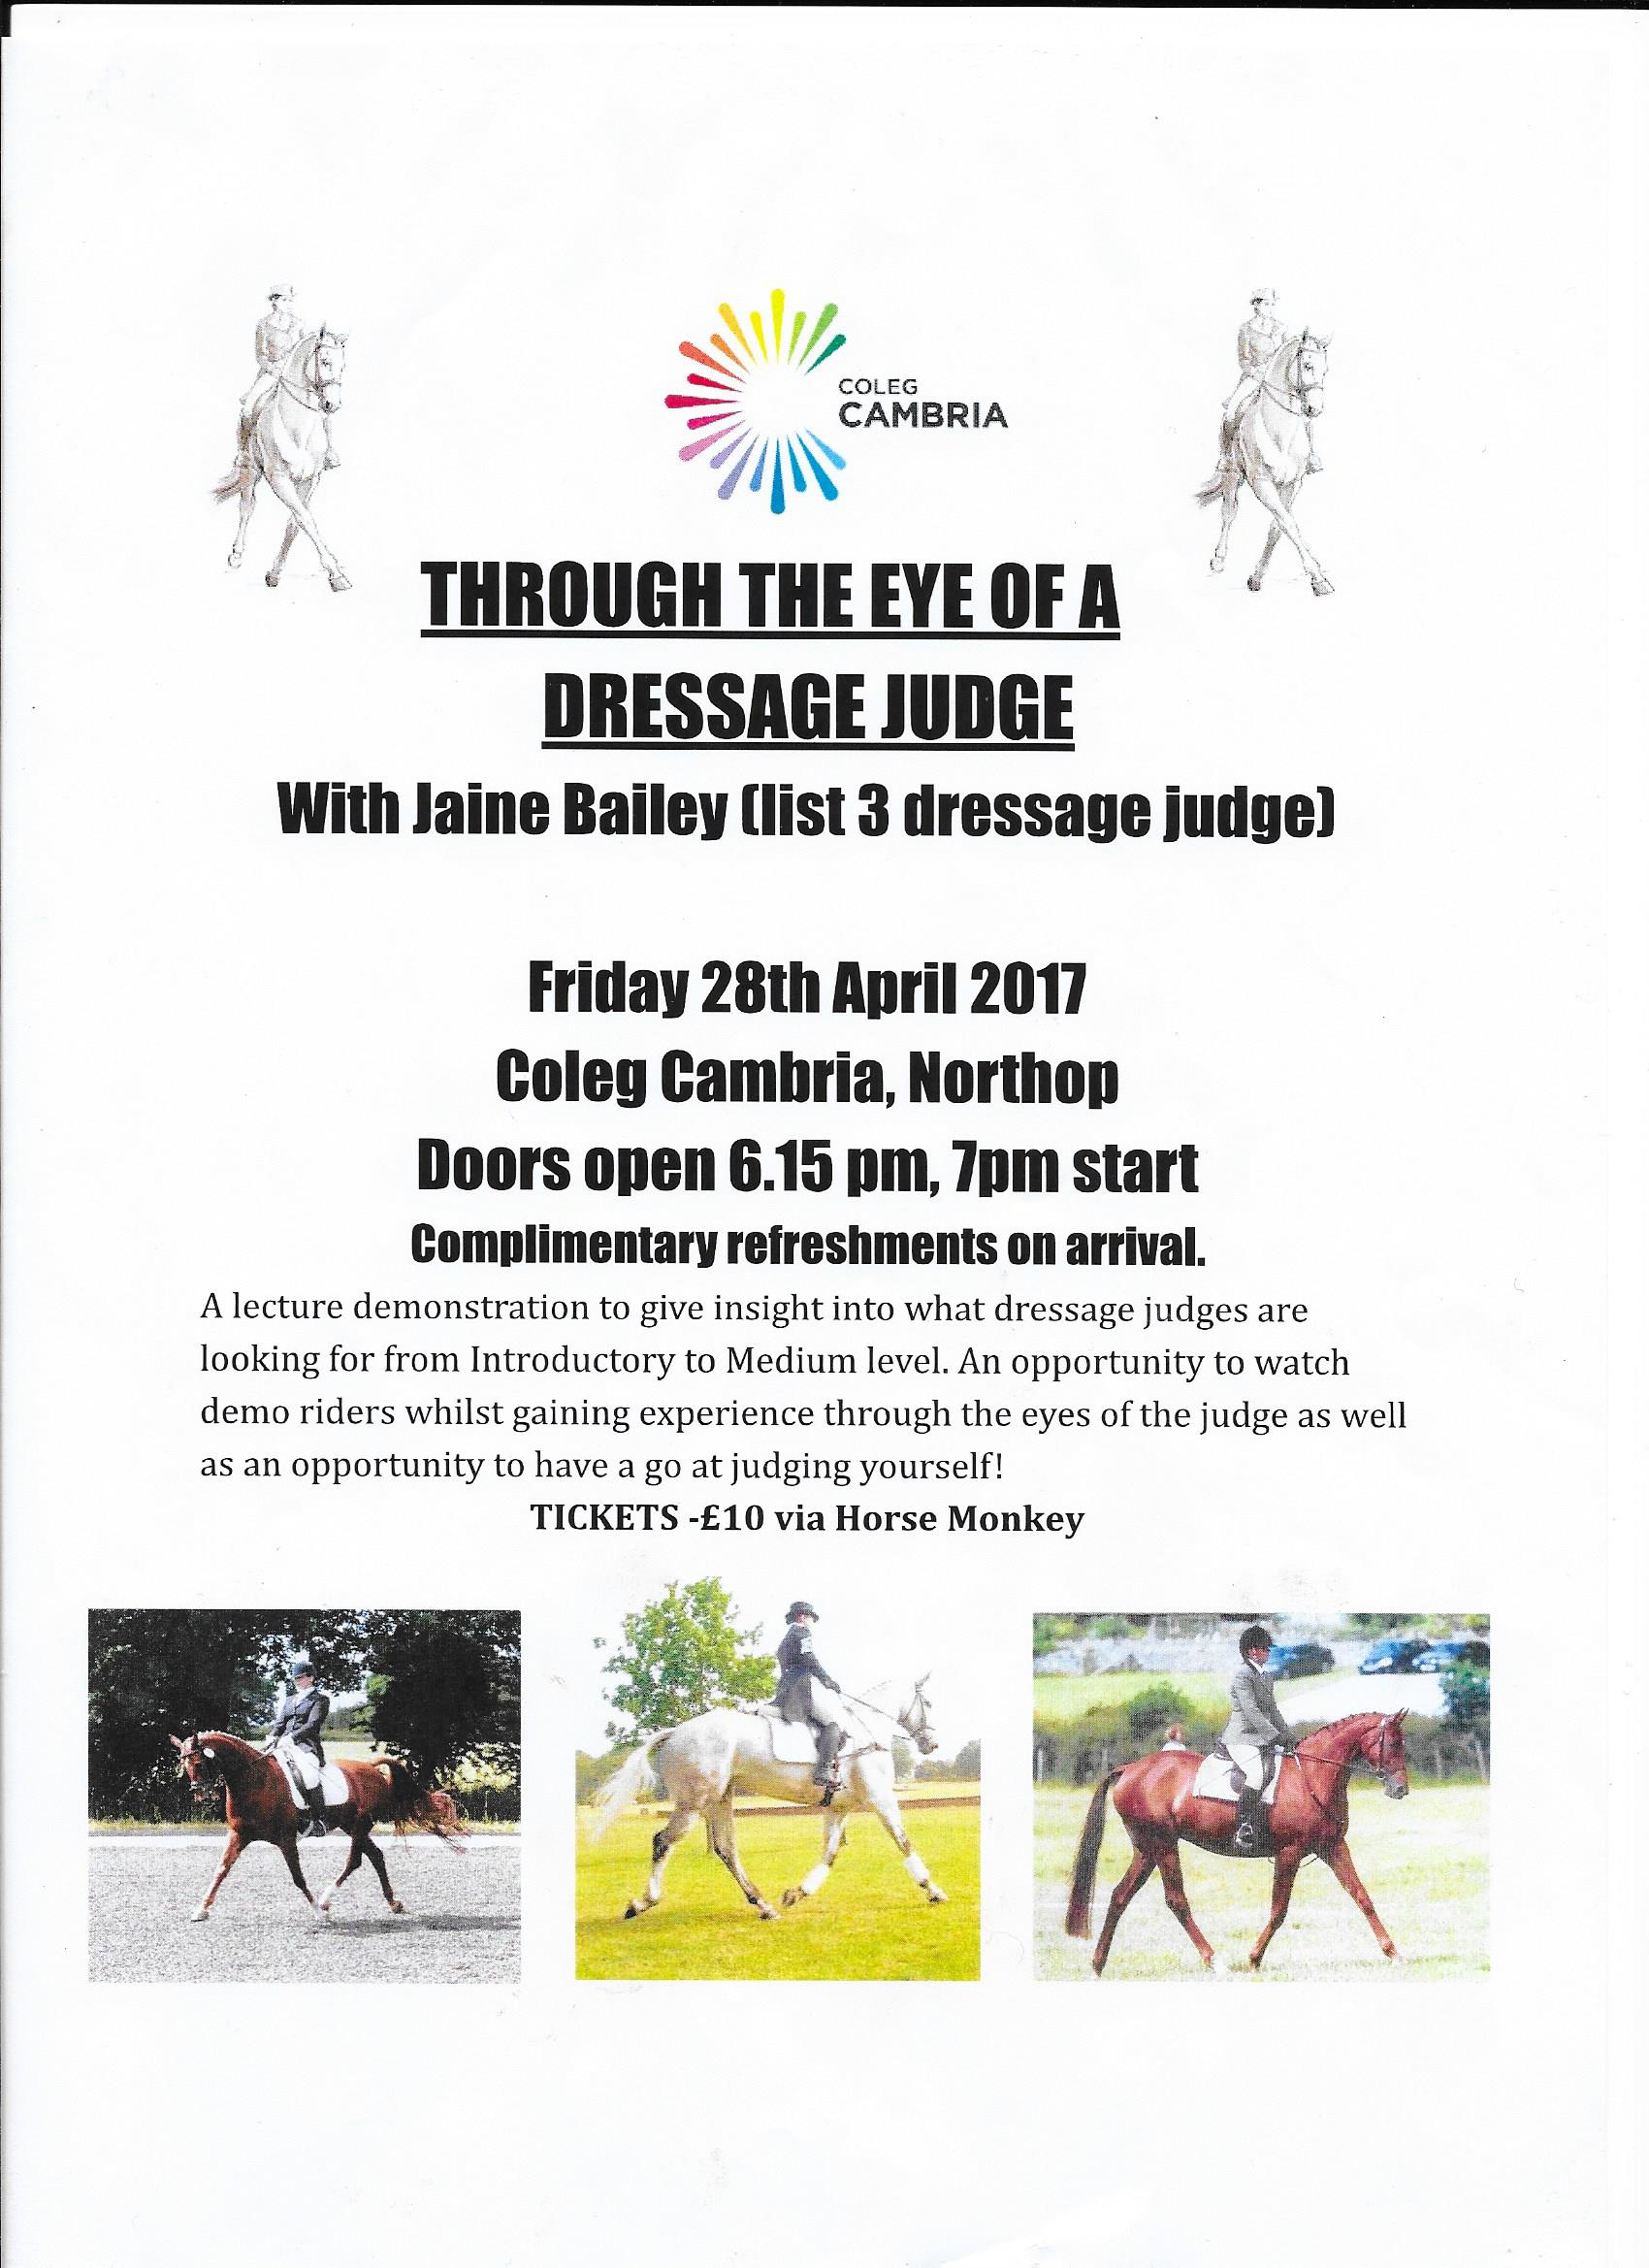 Coleg Cambria - through the eyes of a dressage judge